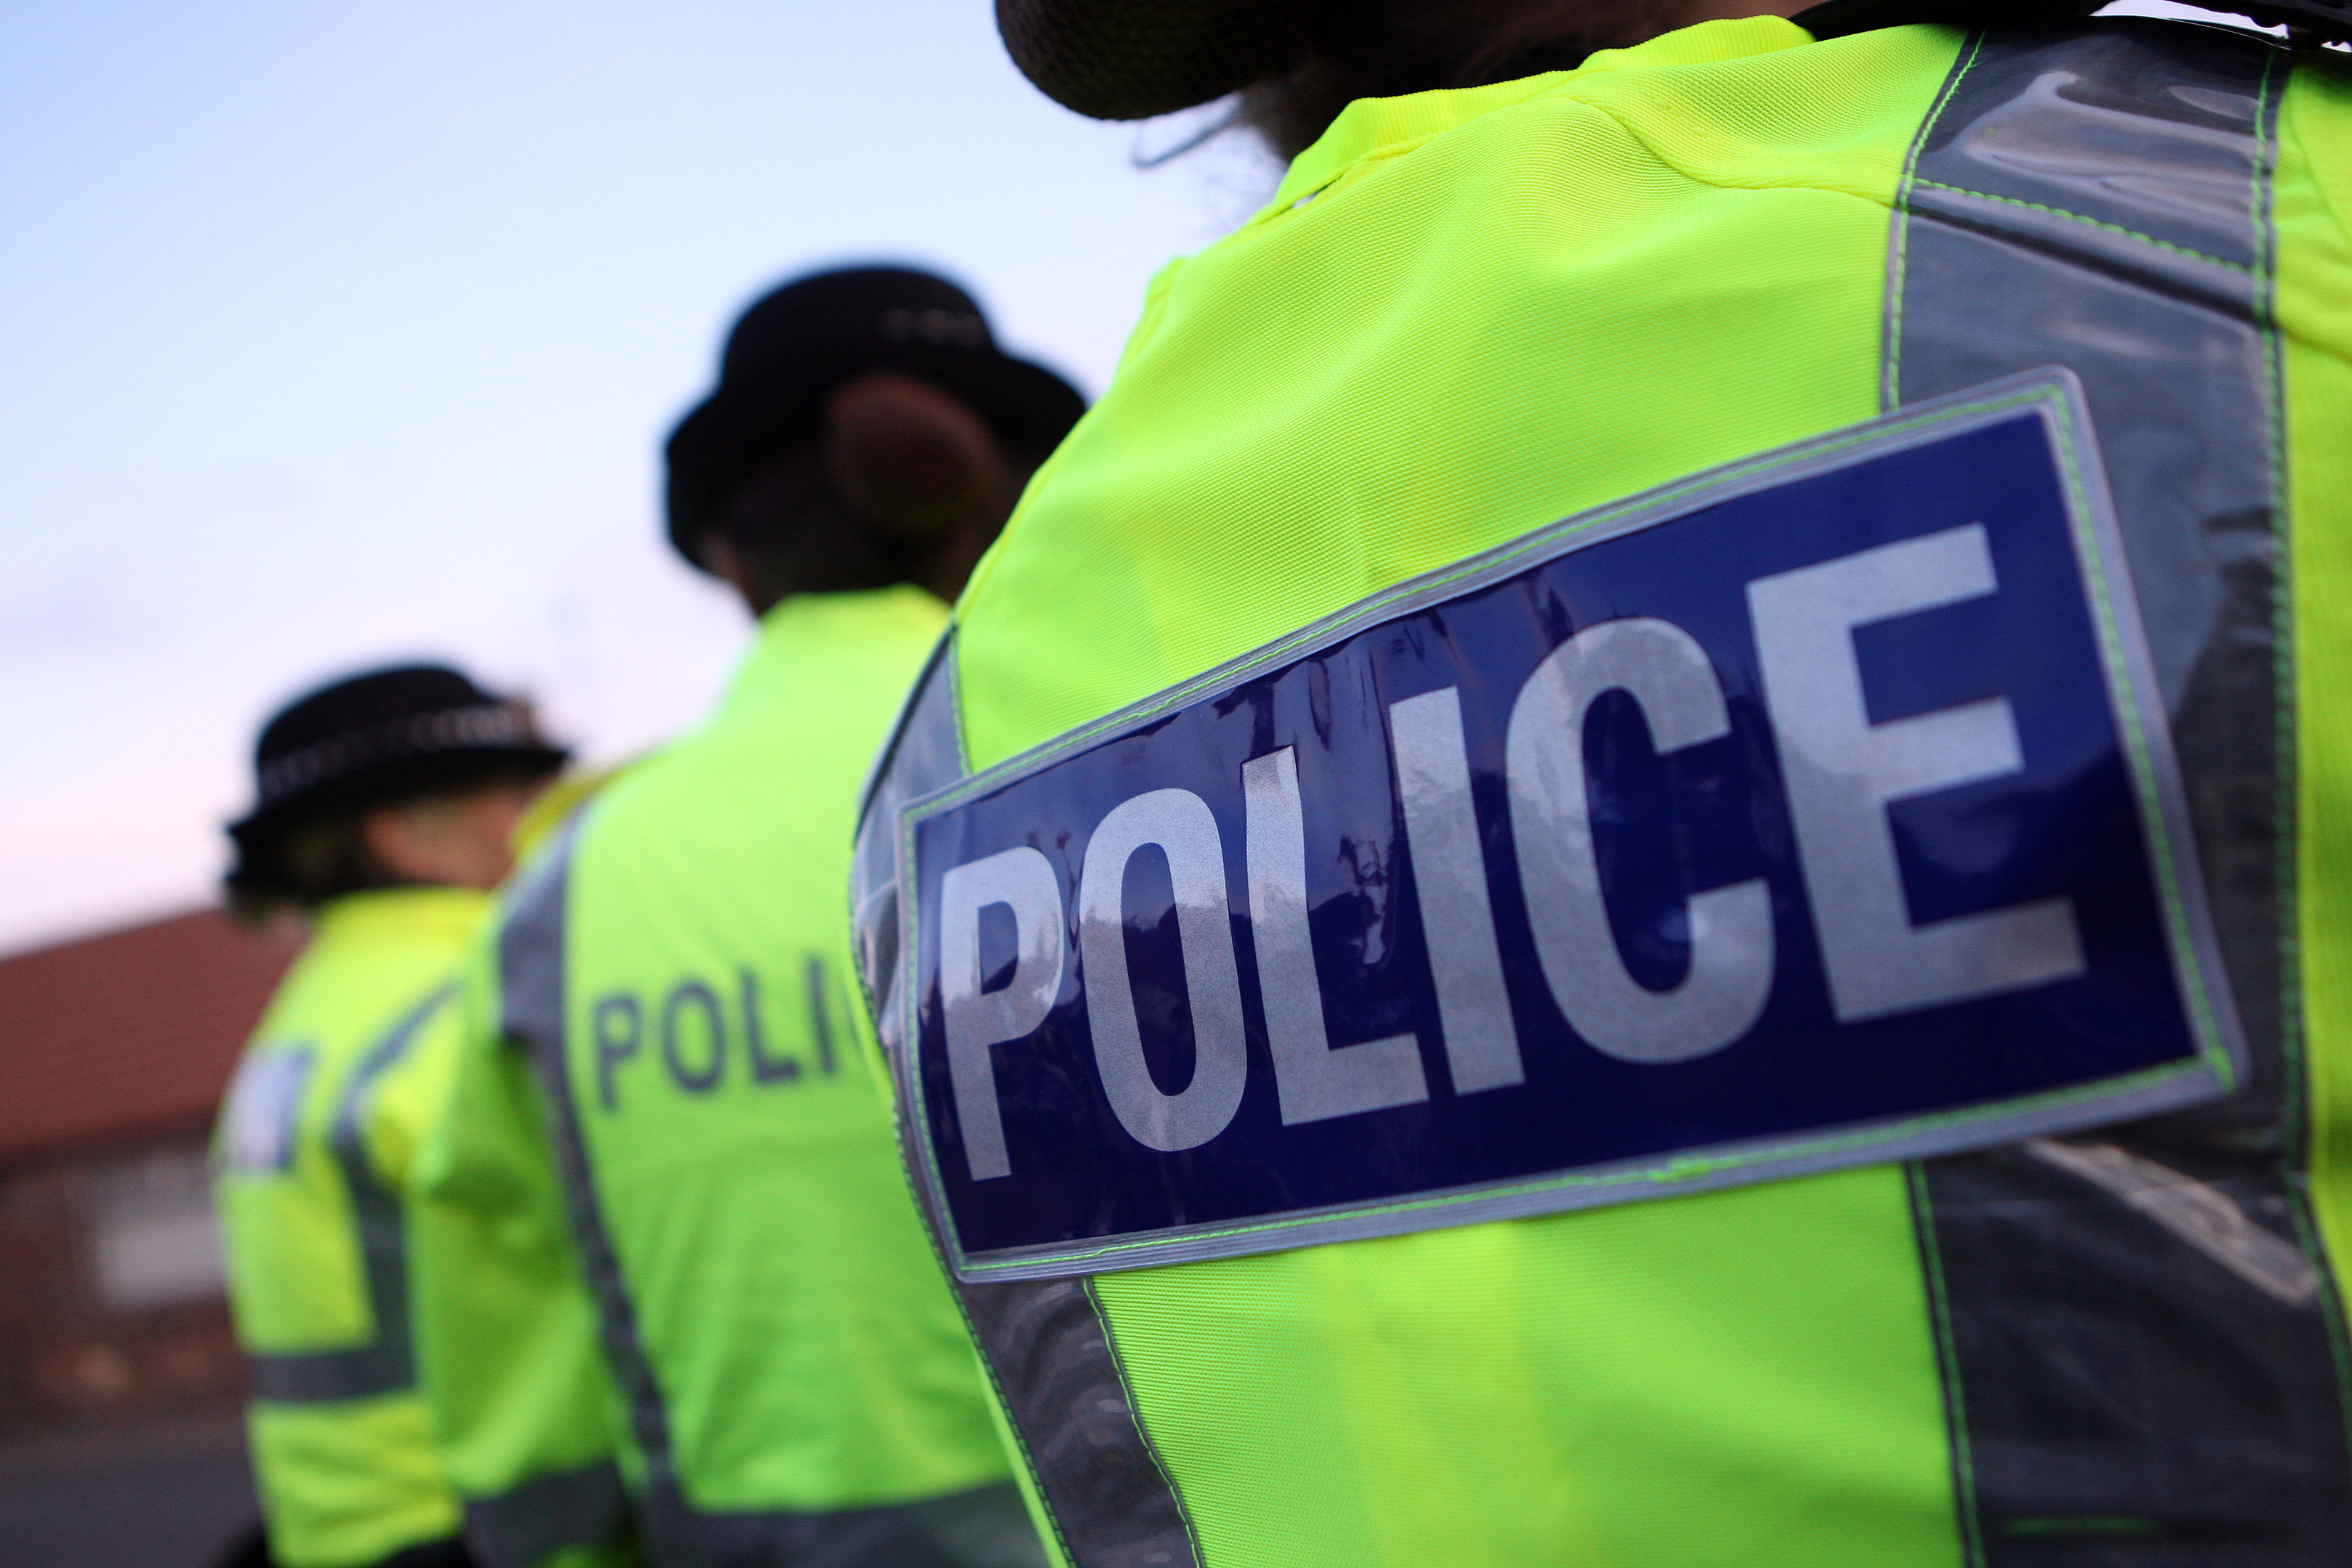 High visibility patrols will be carried out following second robbery